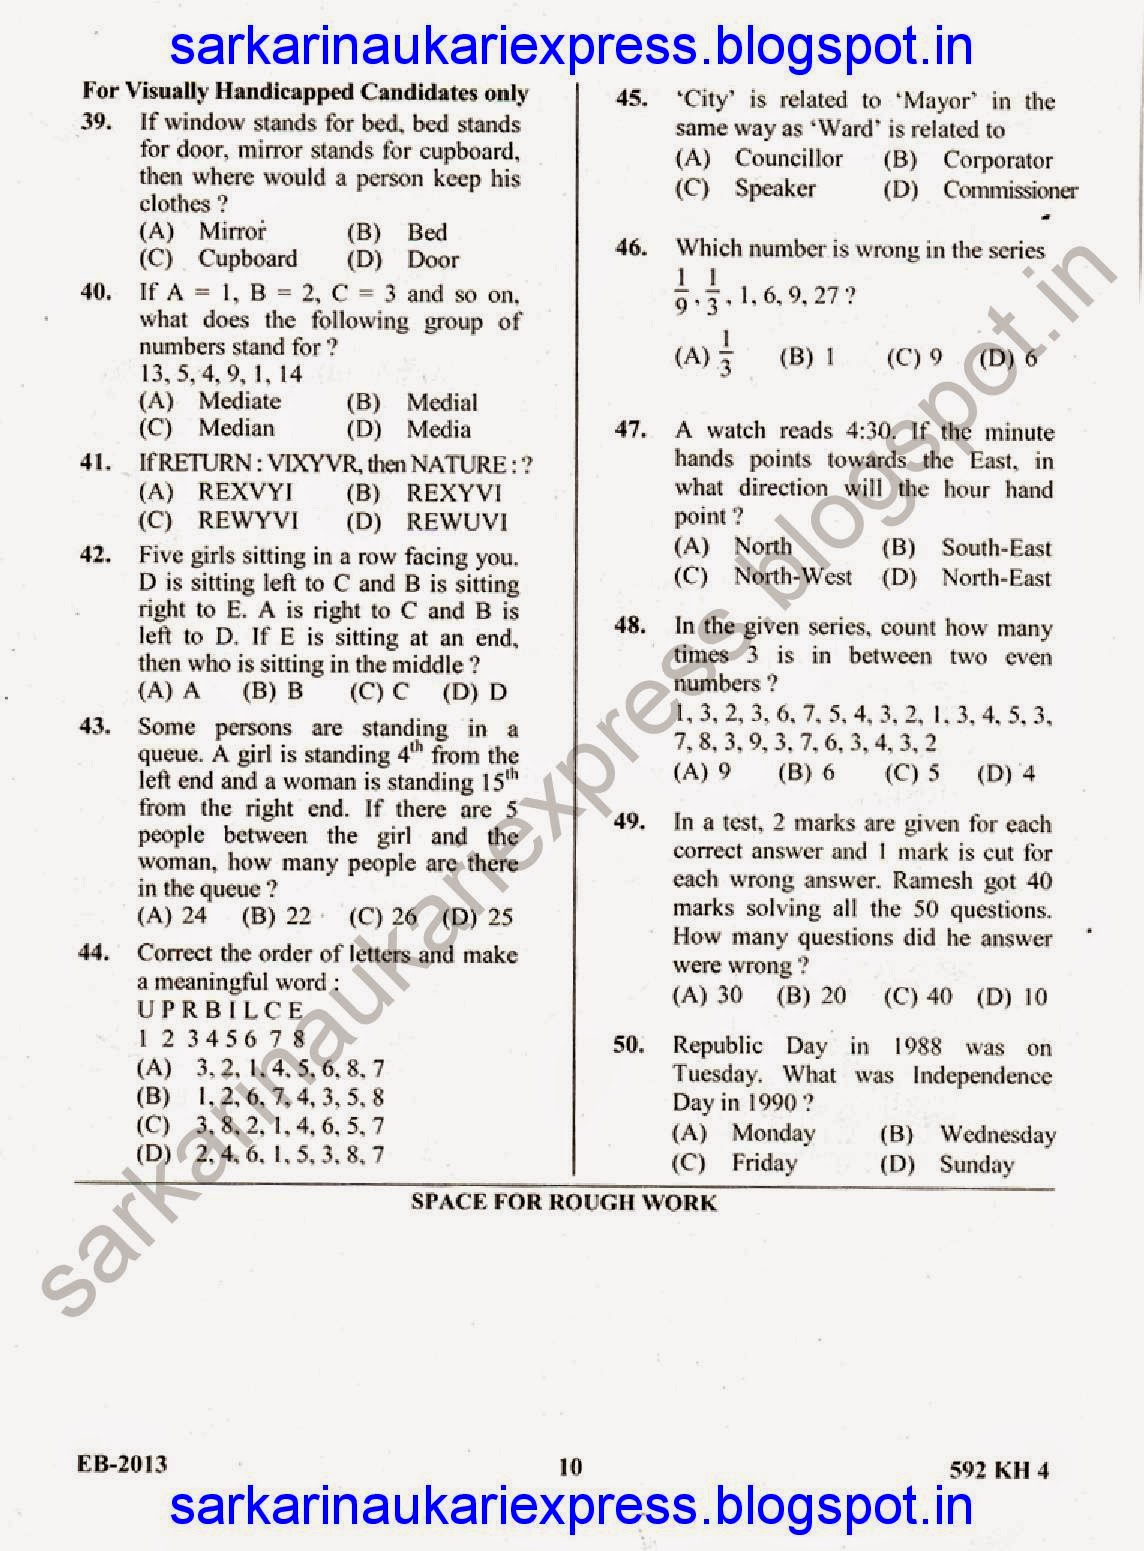 ssc cgl tier held on th question paper set ssc cgl 2013 re exam held on 20th 2014 question paper